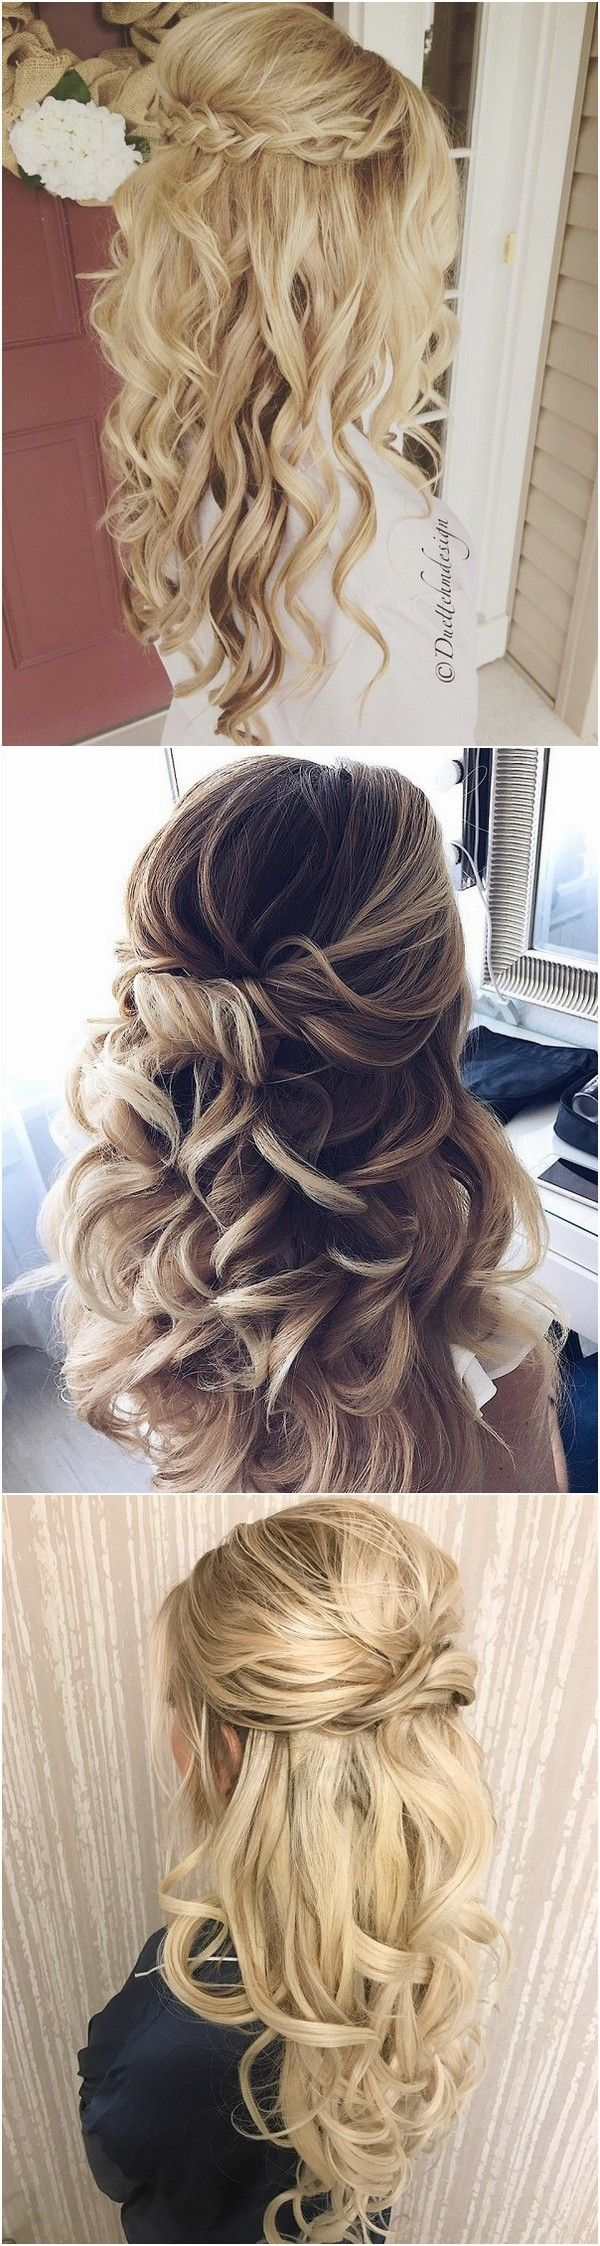 hair down for wedding styles best 25 half up half ideas on 3504 | d128c42c91a040766305dc4a1fdb5e36